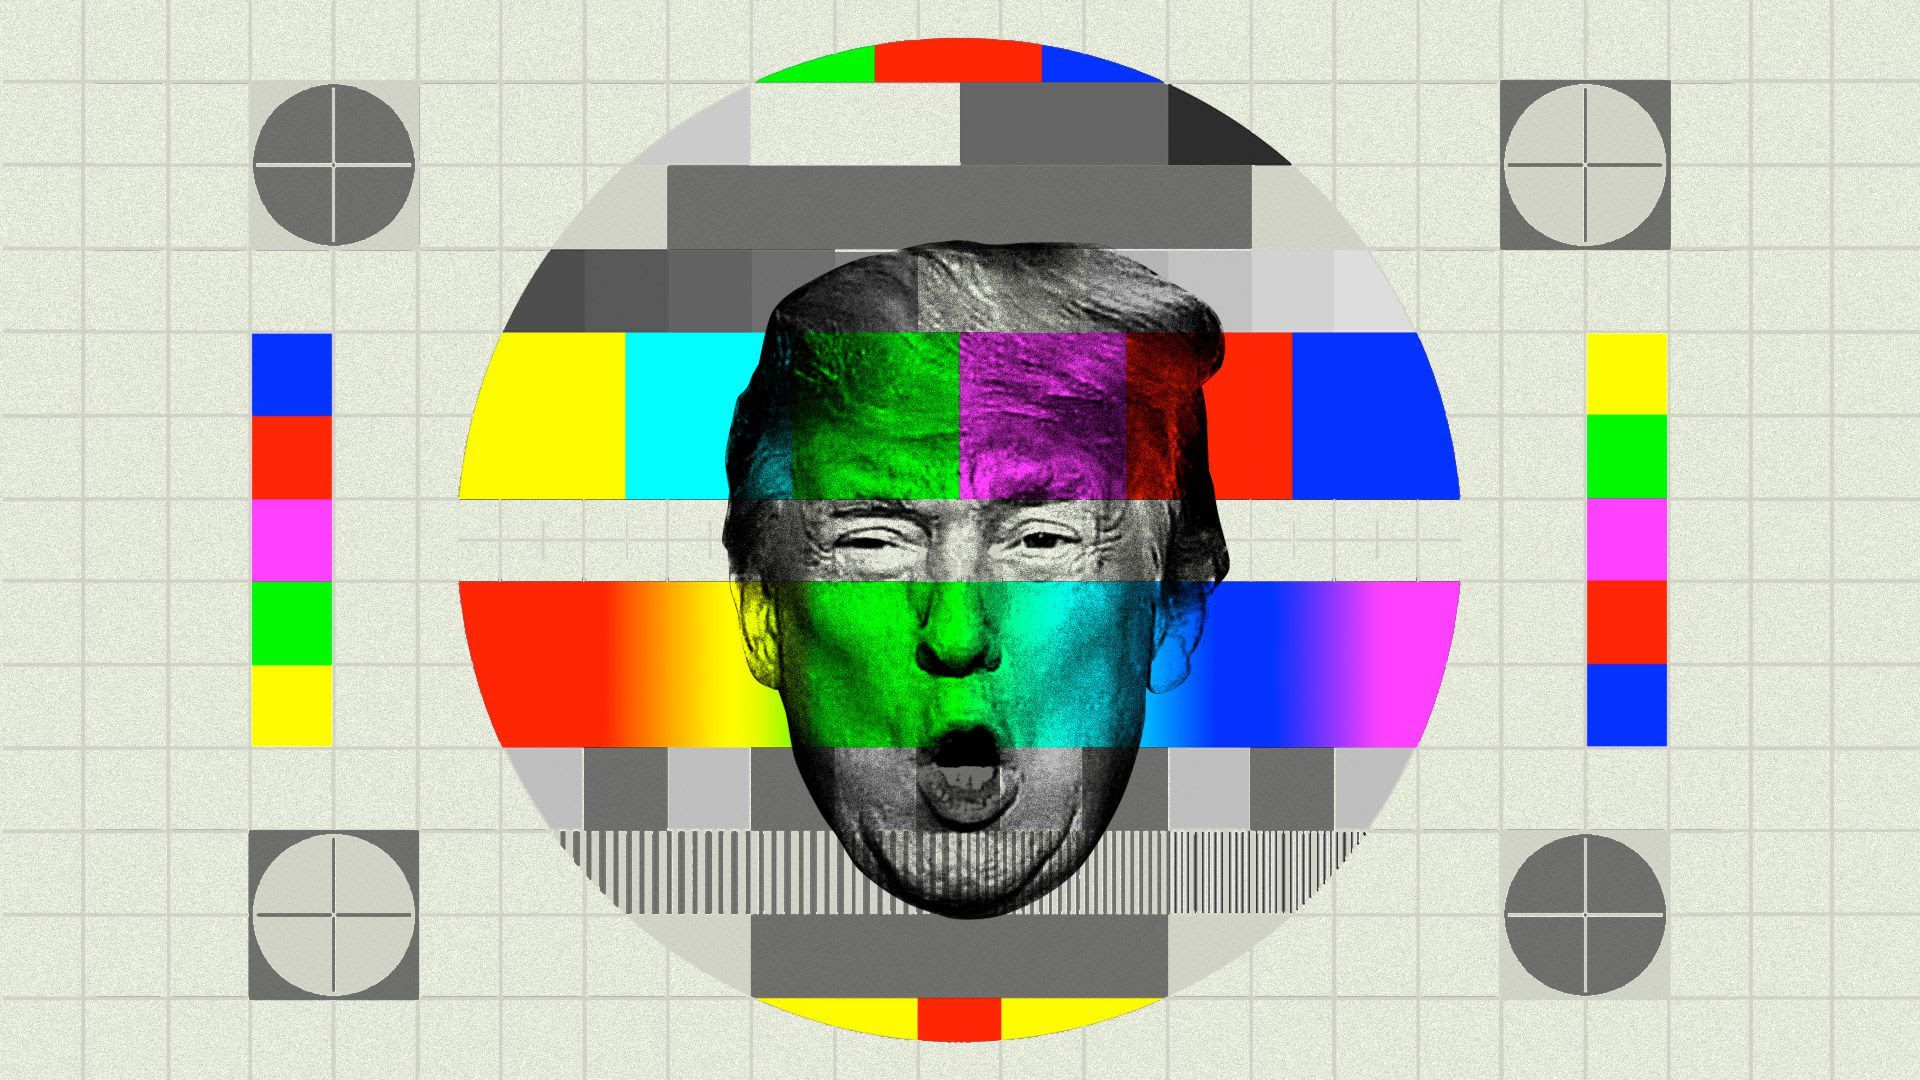 An illustration of Trump's talking head in a TV screen with a pixelated rainbow